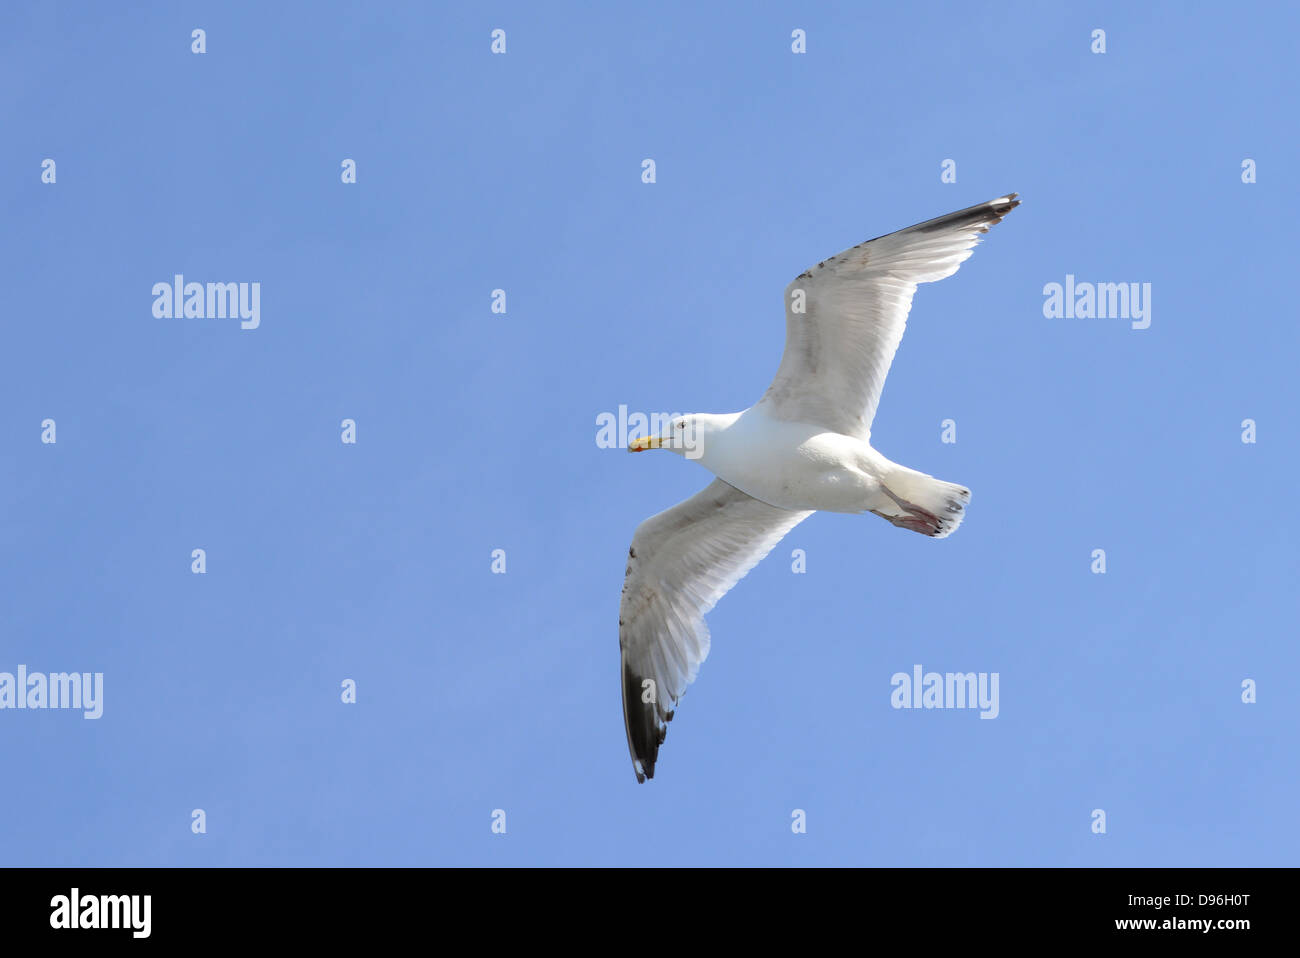 Seagull against a bright blue sky - Stock Image